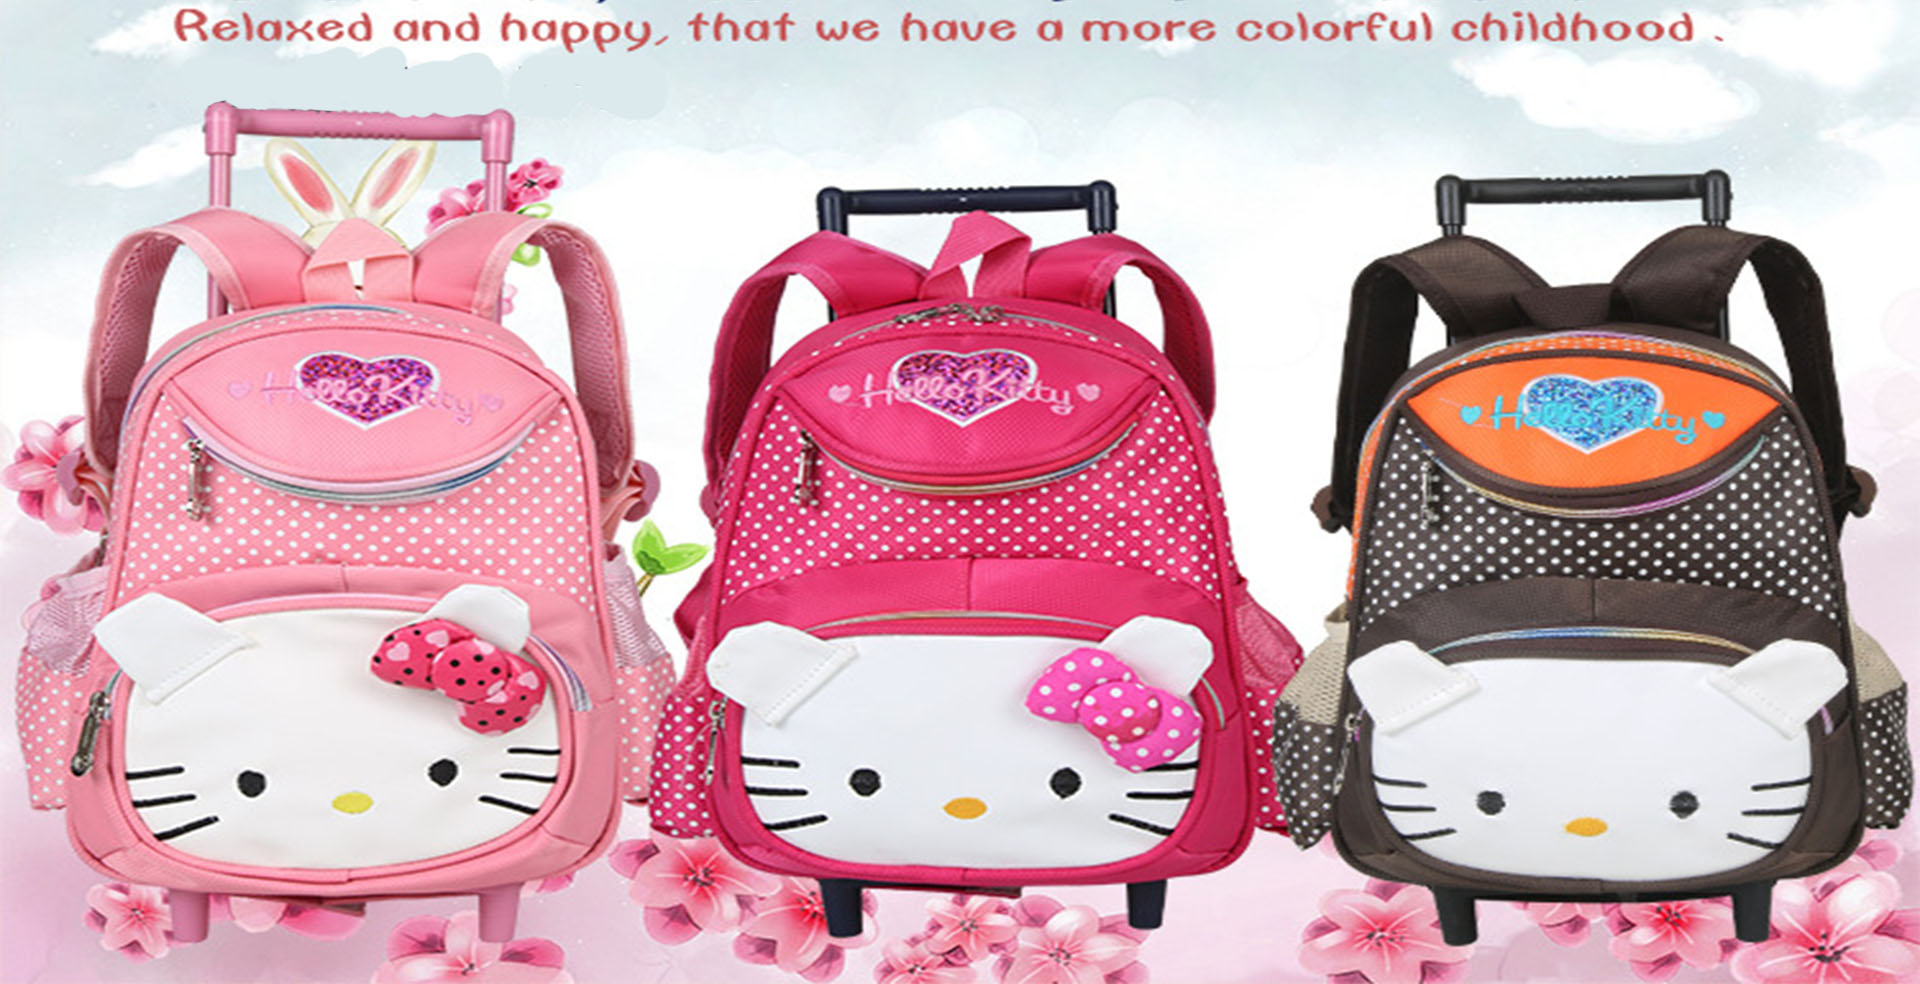 balo-keo-hello-kitty-2